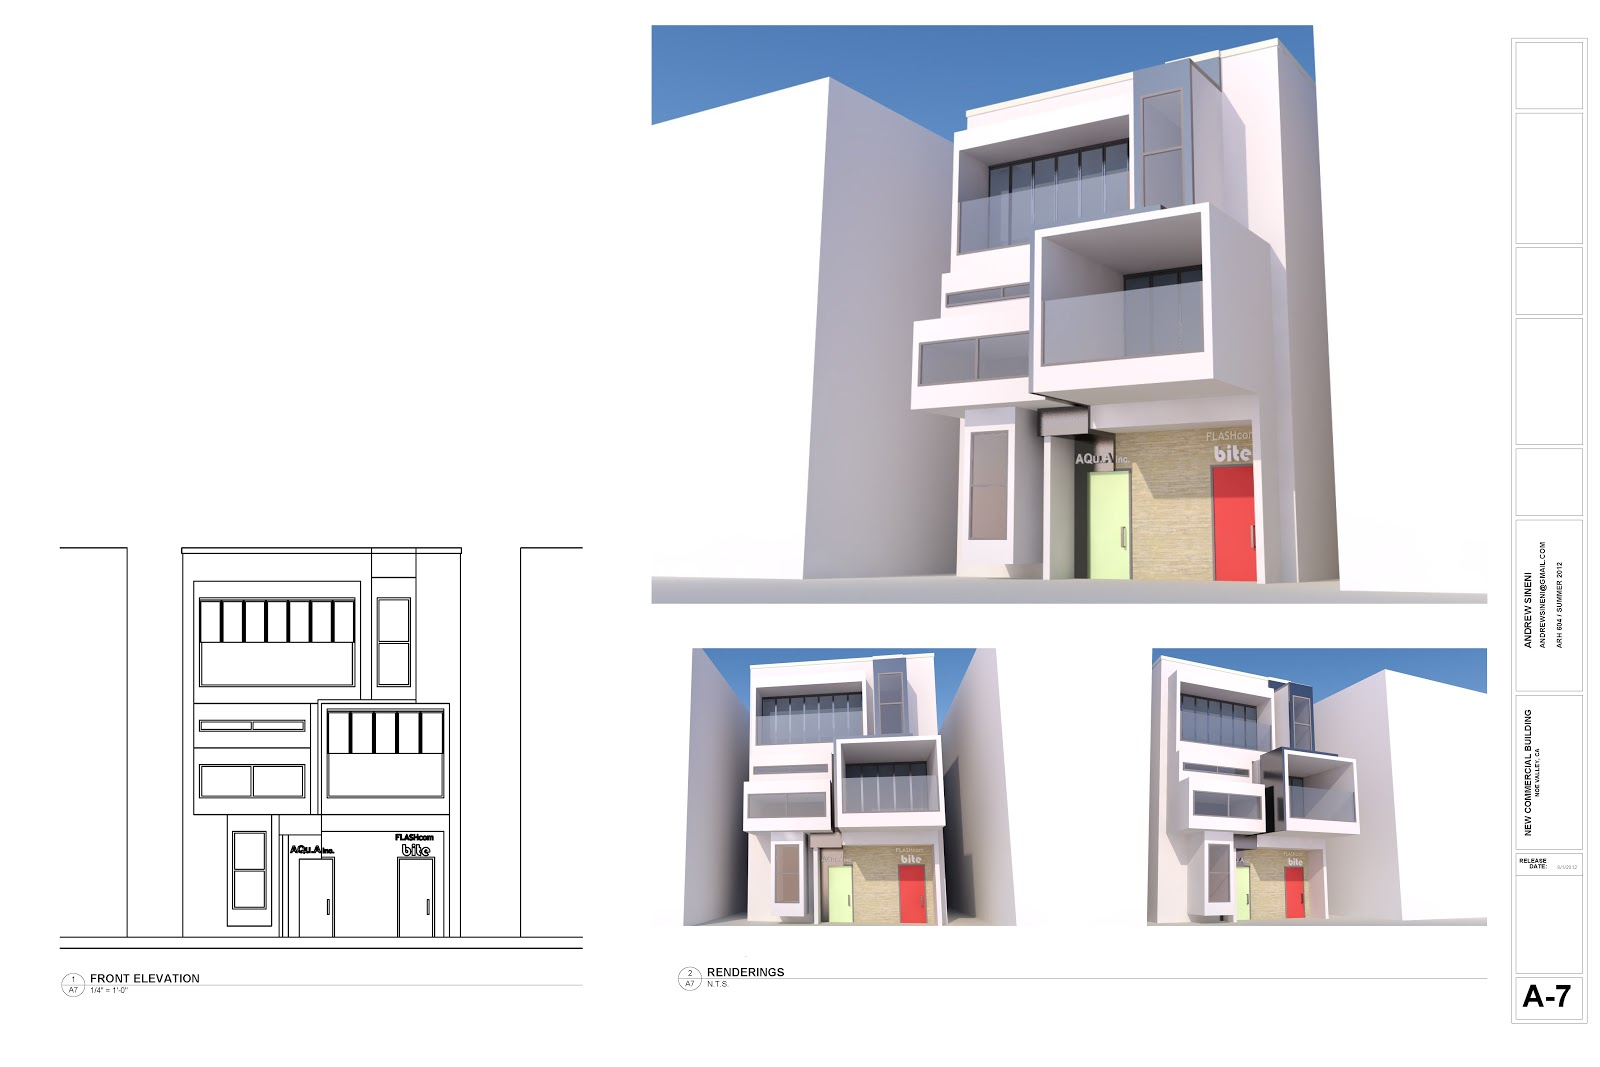 Project dump 3 story 25 39 frontage lot commercial building for 3 storey commercial building design